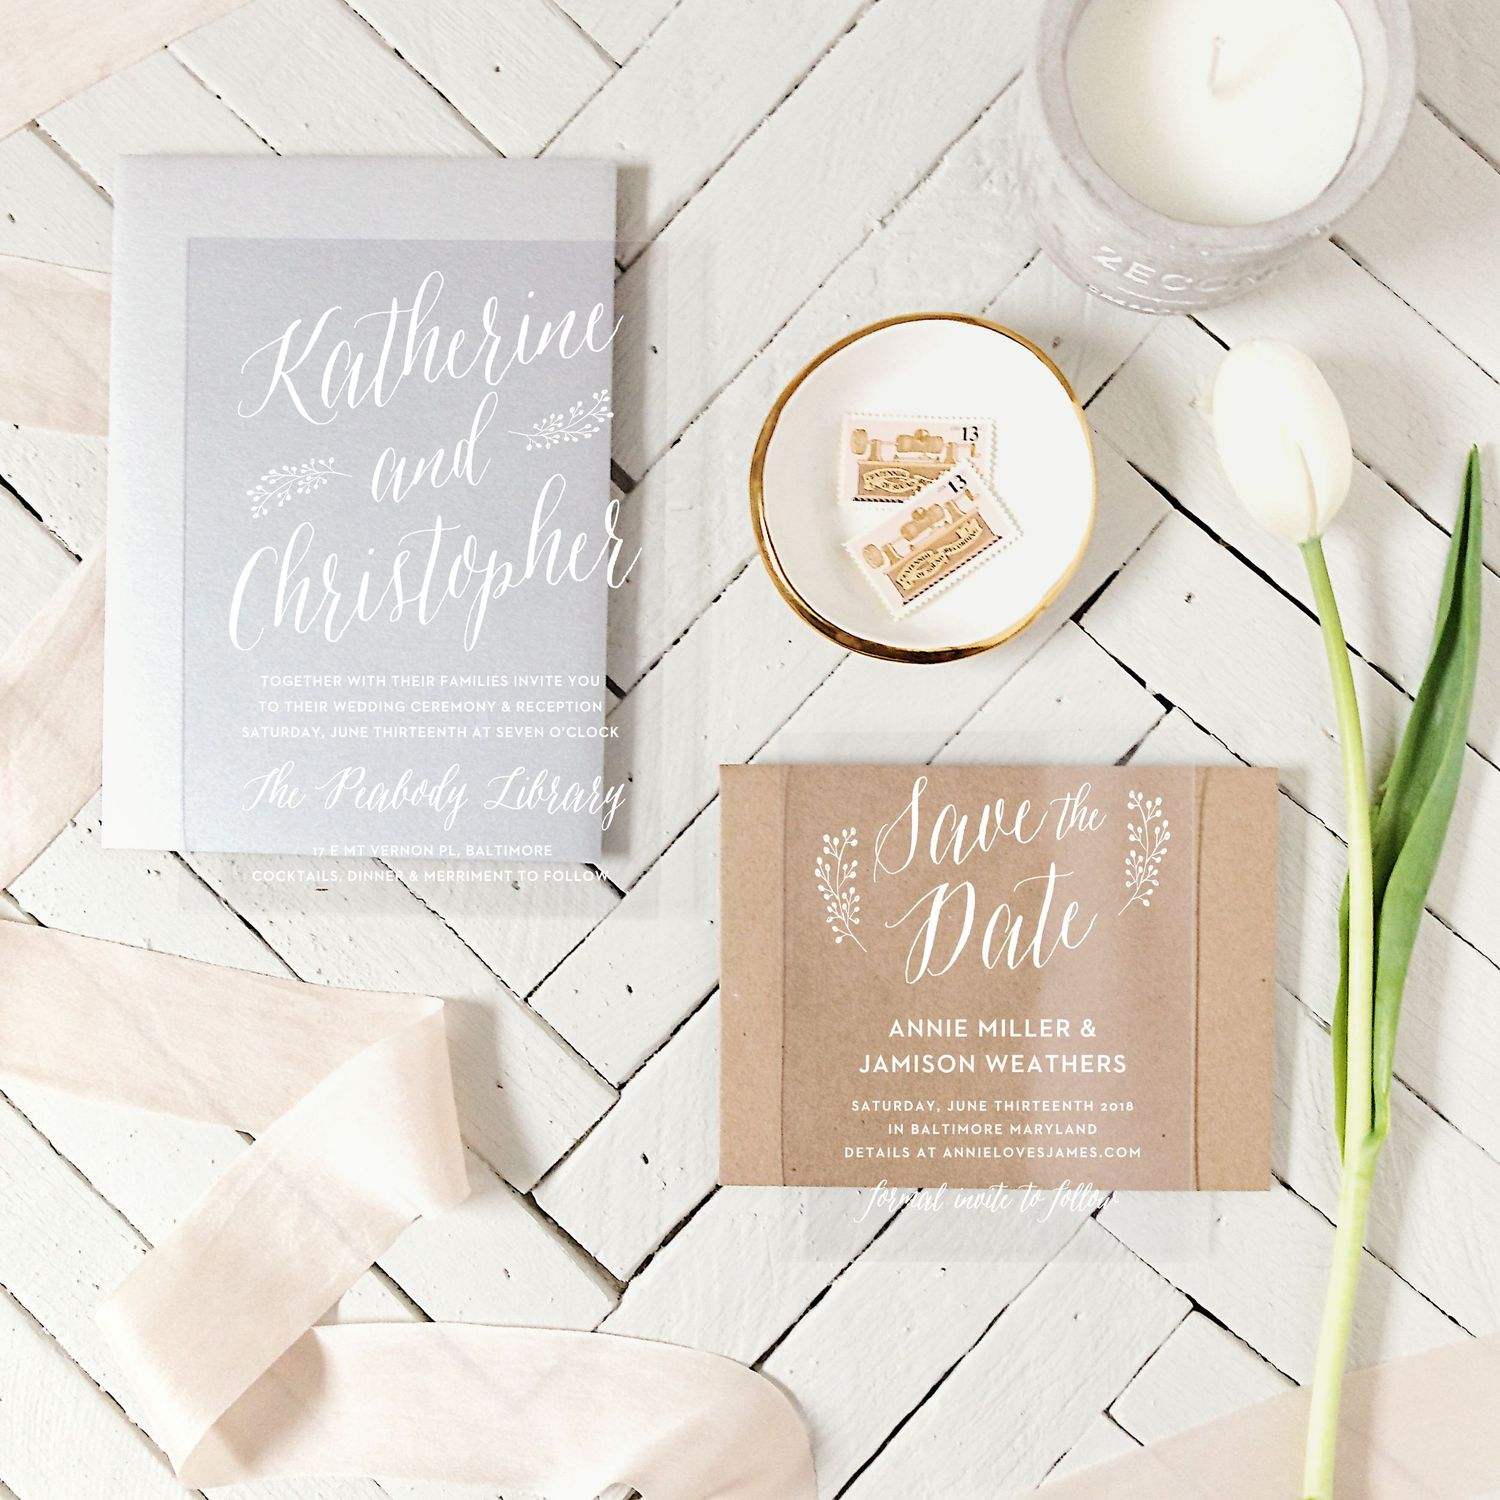 Wedding Invitation Stationary Set from Basic Invite